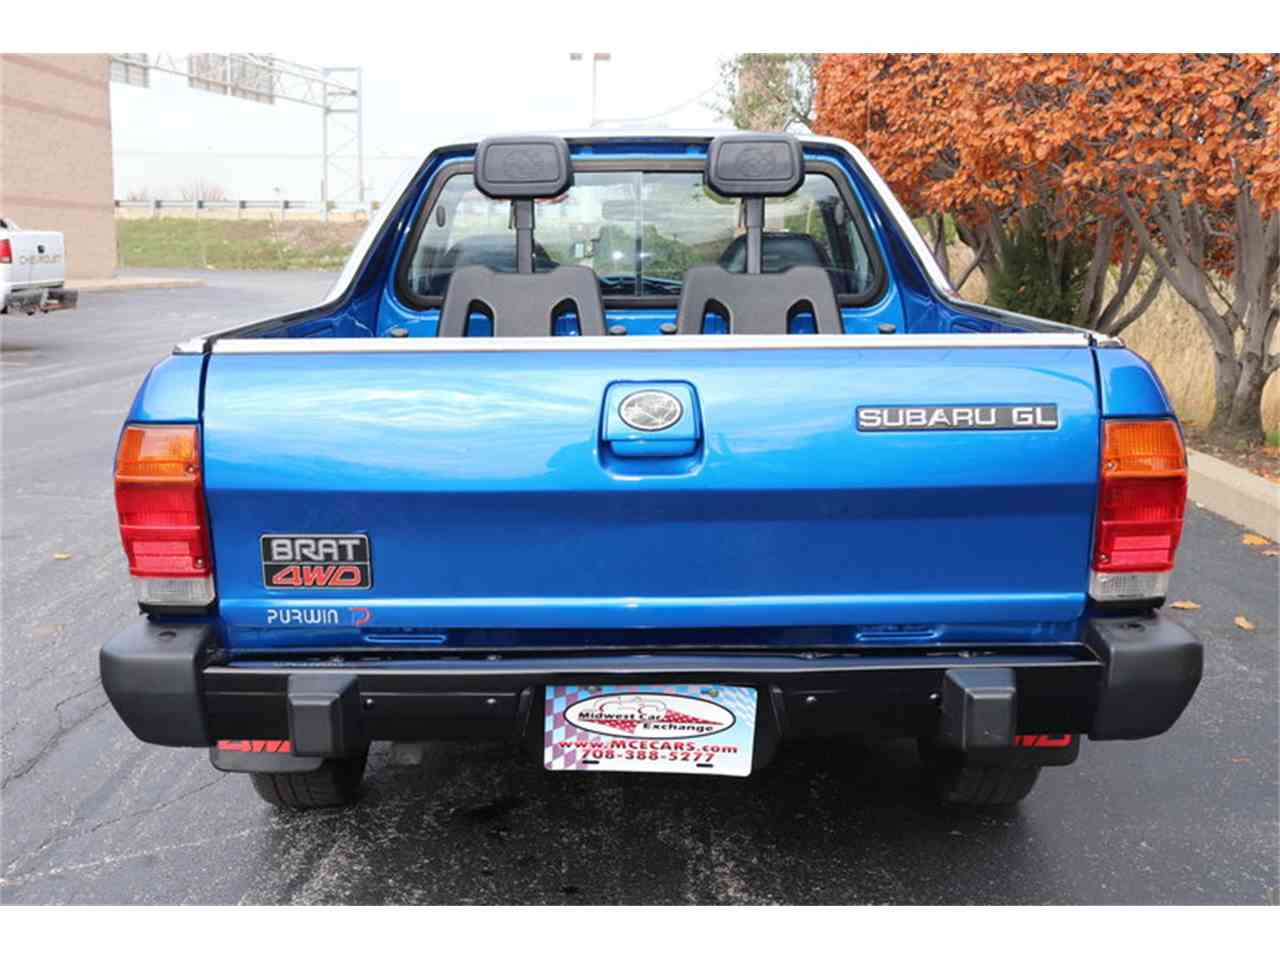 Large Picture of '83 Brat located in Illinois Offered by Midwest Car Exchange - M4TU